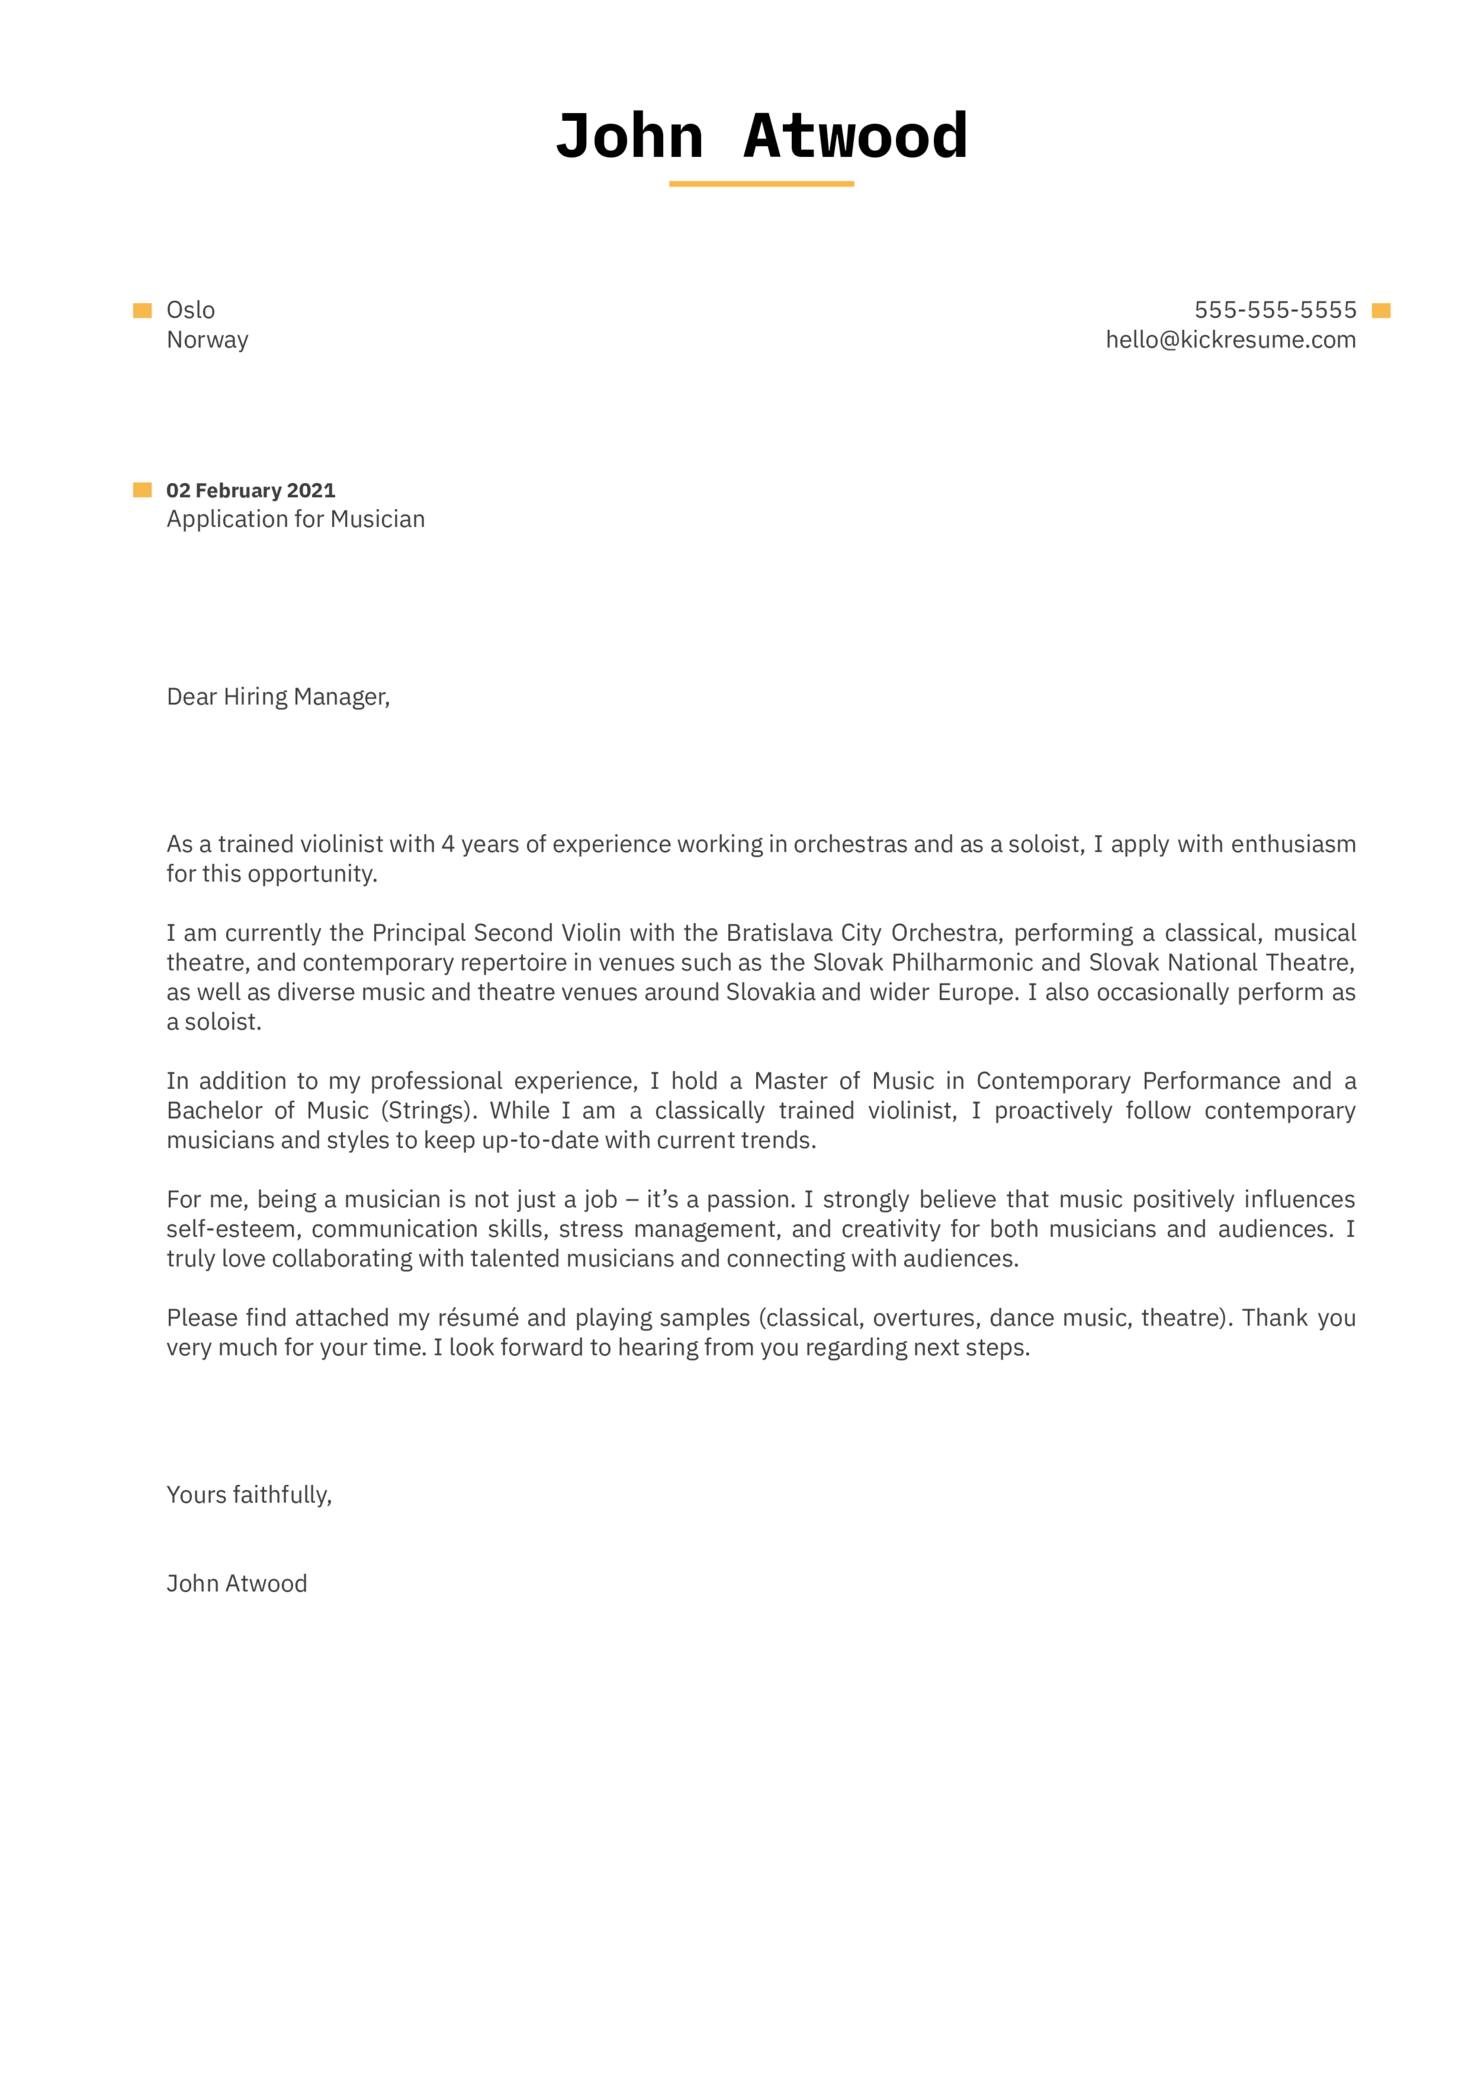 Musician Cover Letter Template